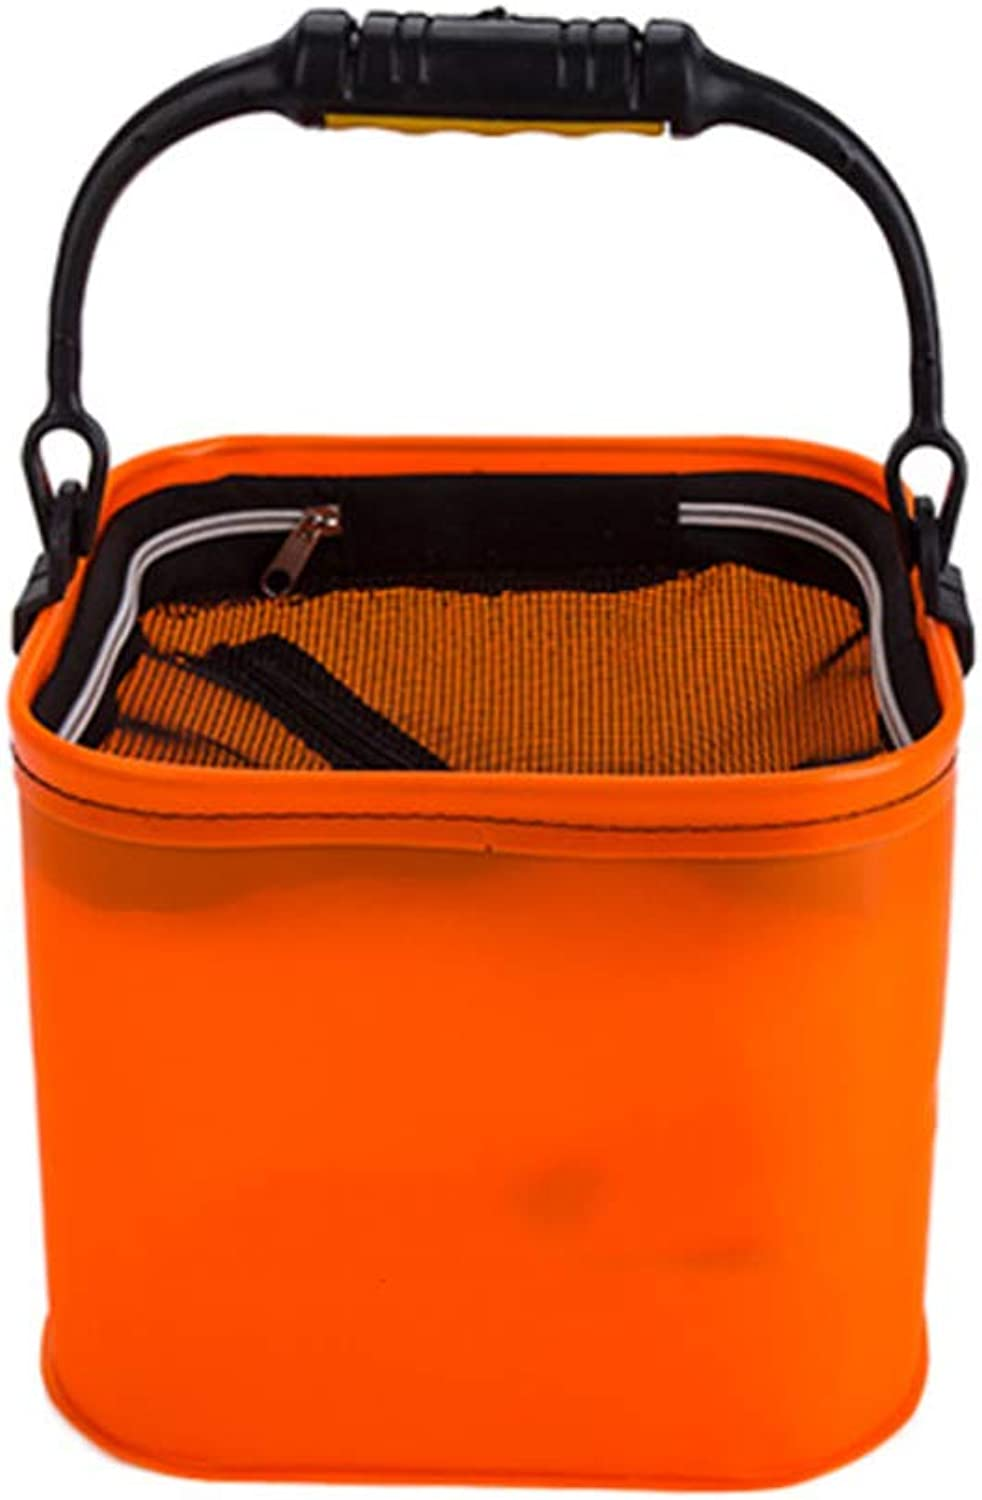 Large Capacity Collapsible Bucket,Portable Folding Water Container Space Saving Suitable for Outdoor Camping,Hiking & Home-A 7L